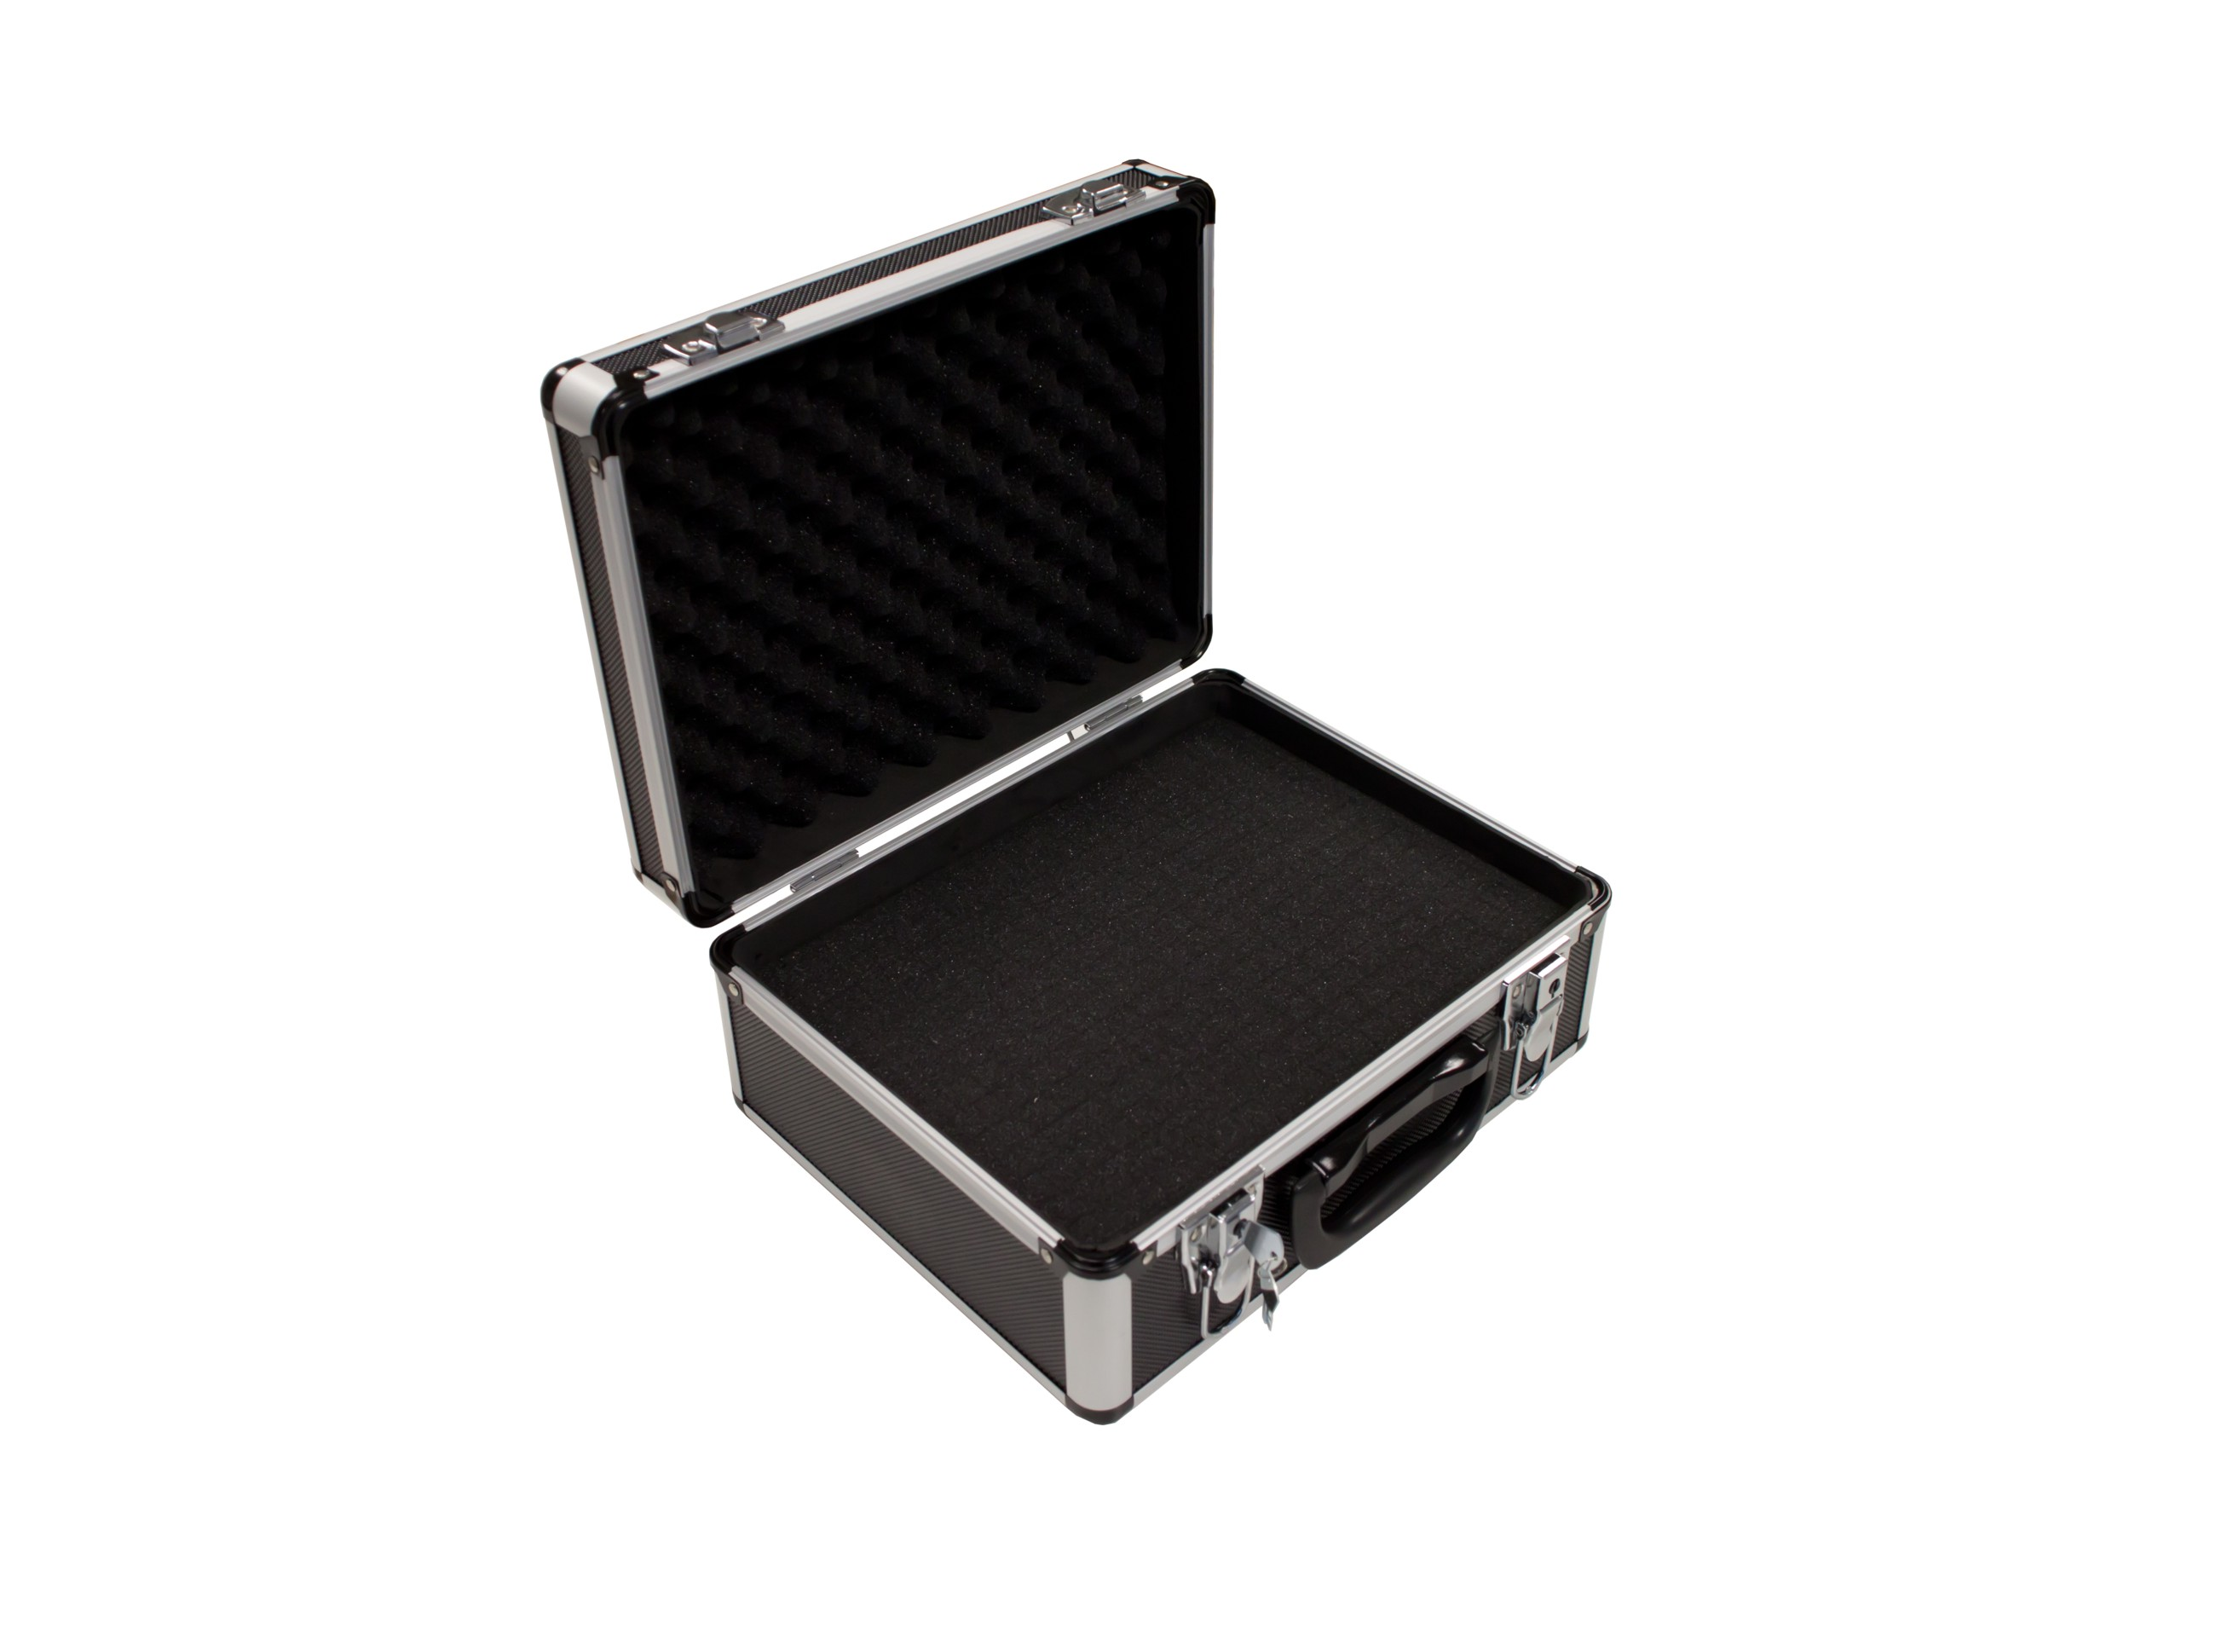 «PeakTech® P 7300» Carrying Case for Measurement Instruments